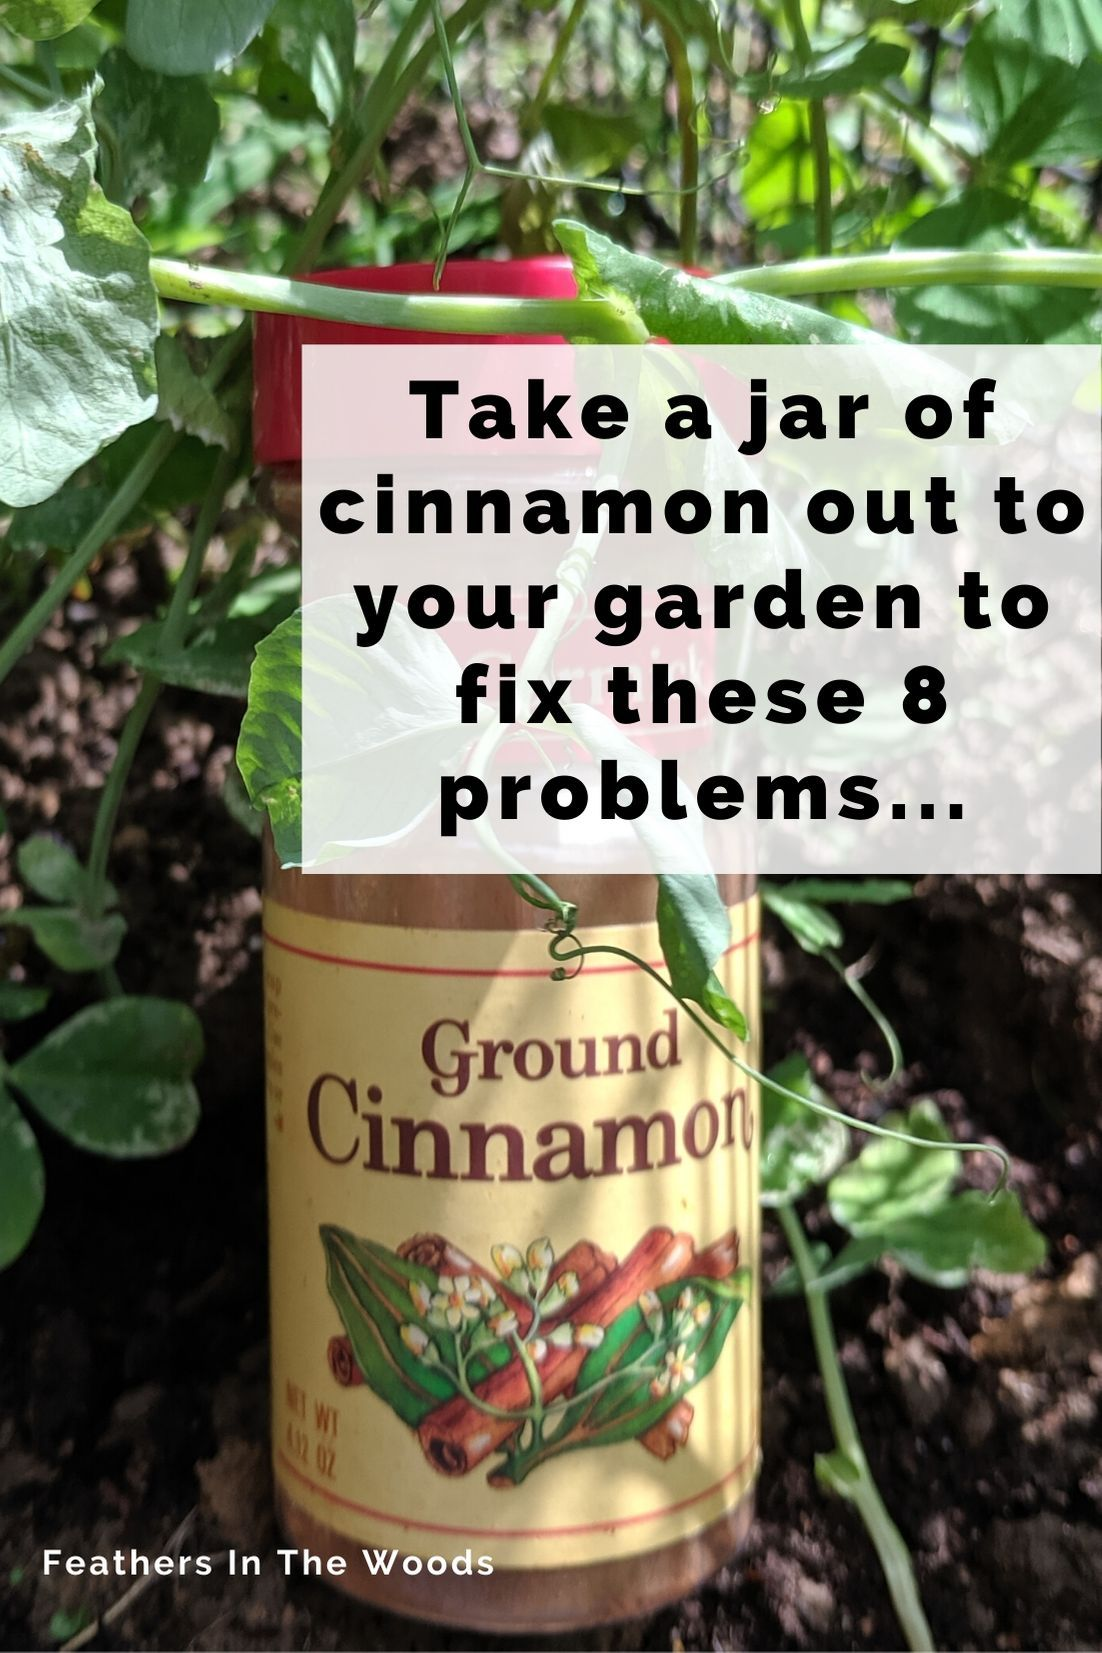 Your garden needs cinnamon! #gnats